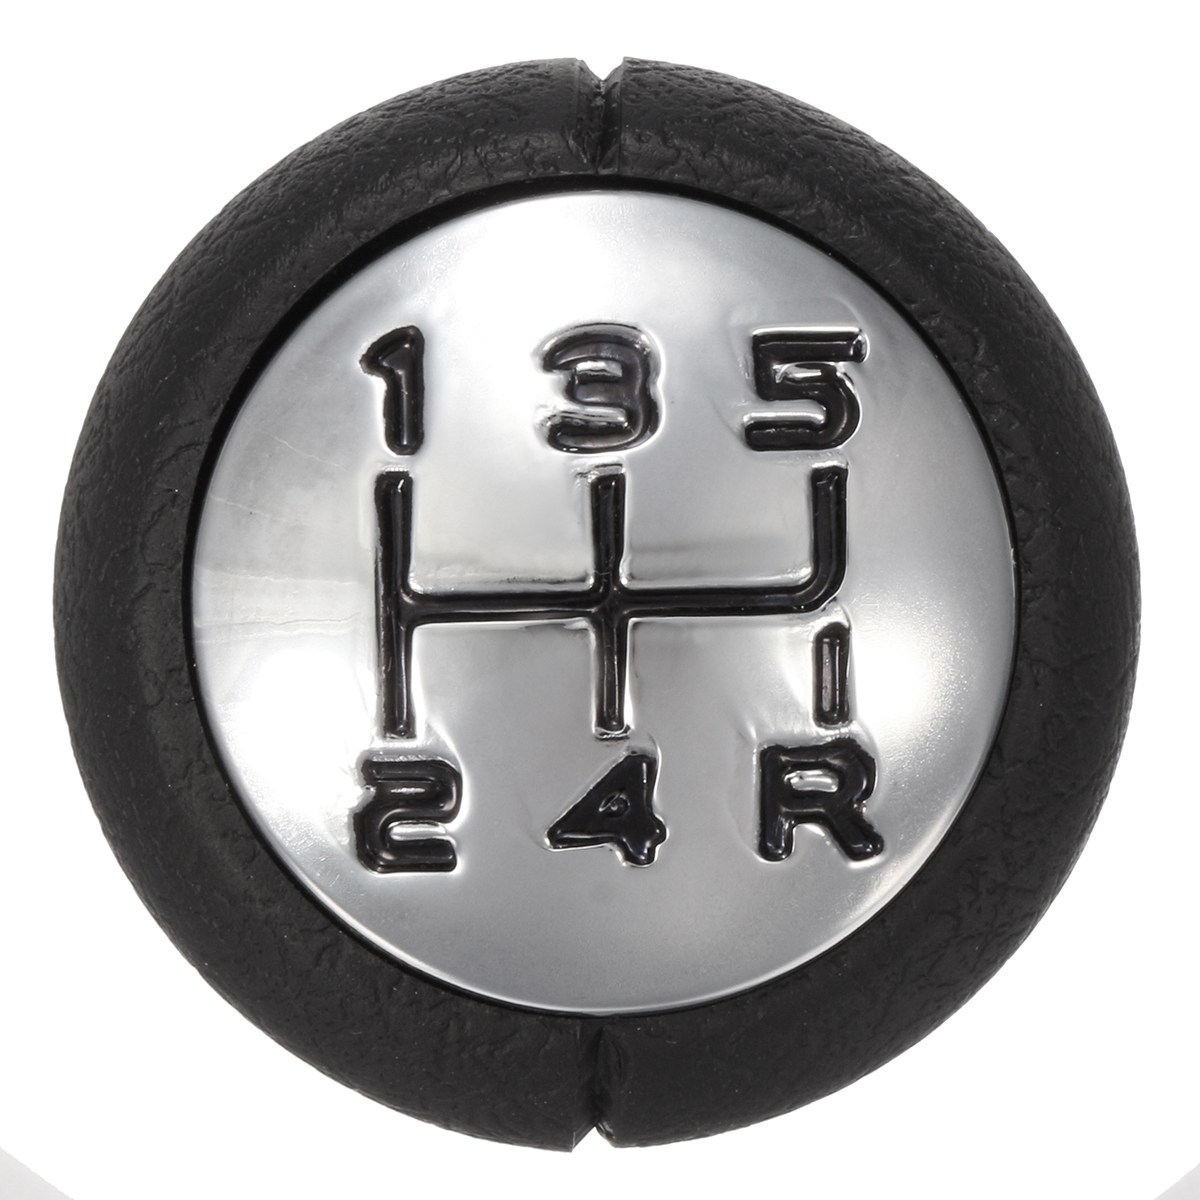 5 Speed Gear Shift lever Knob Manual For Peugeot 106 107 205 206 207 306 307 Shift Knob